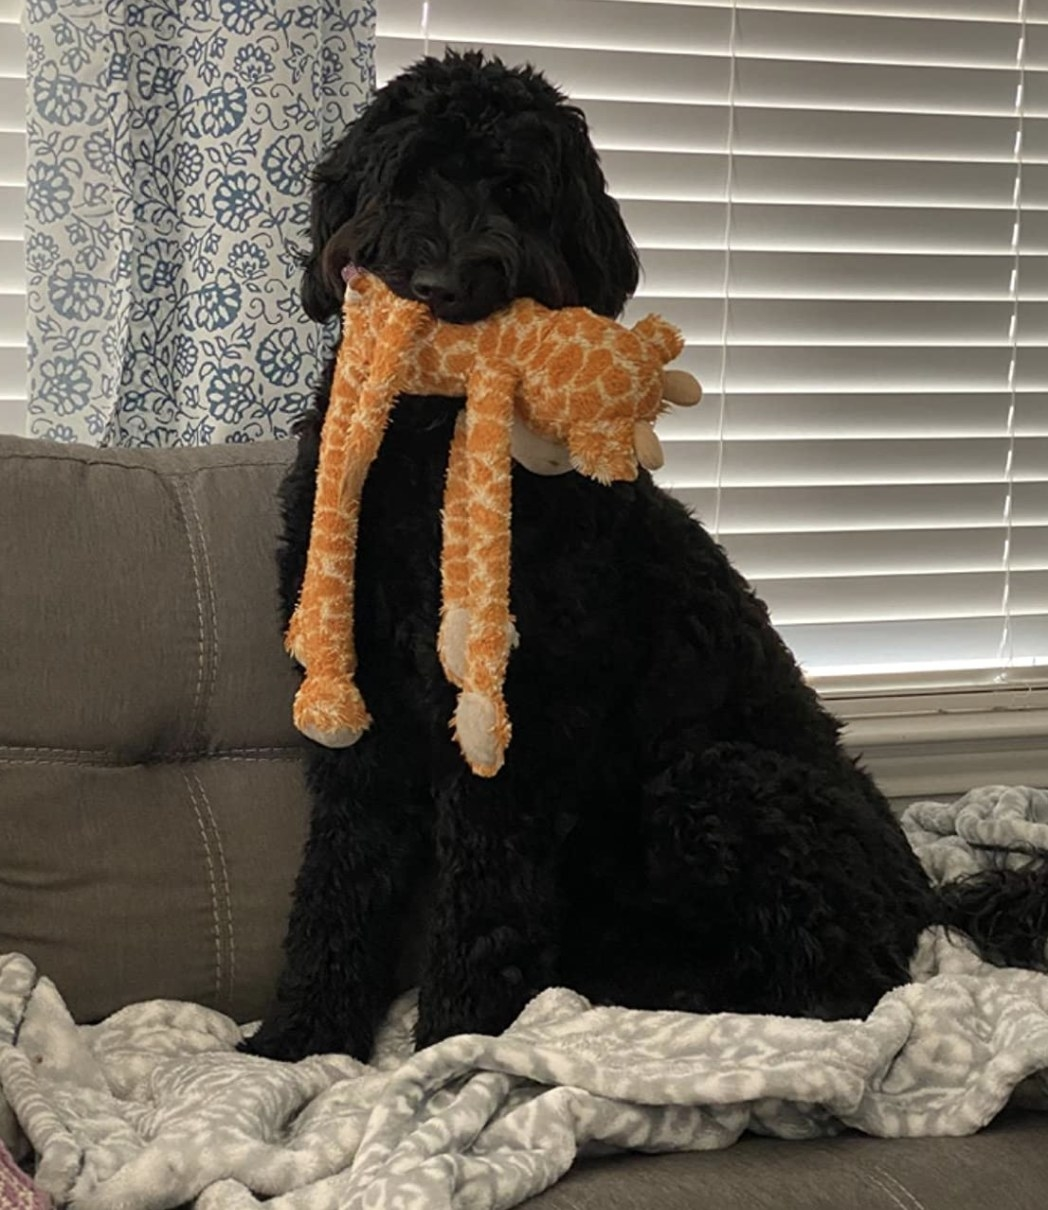 A black dog with an orange and yellow stuffed giraffe toy in its mouth